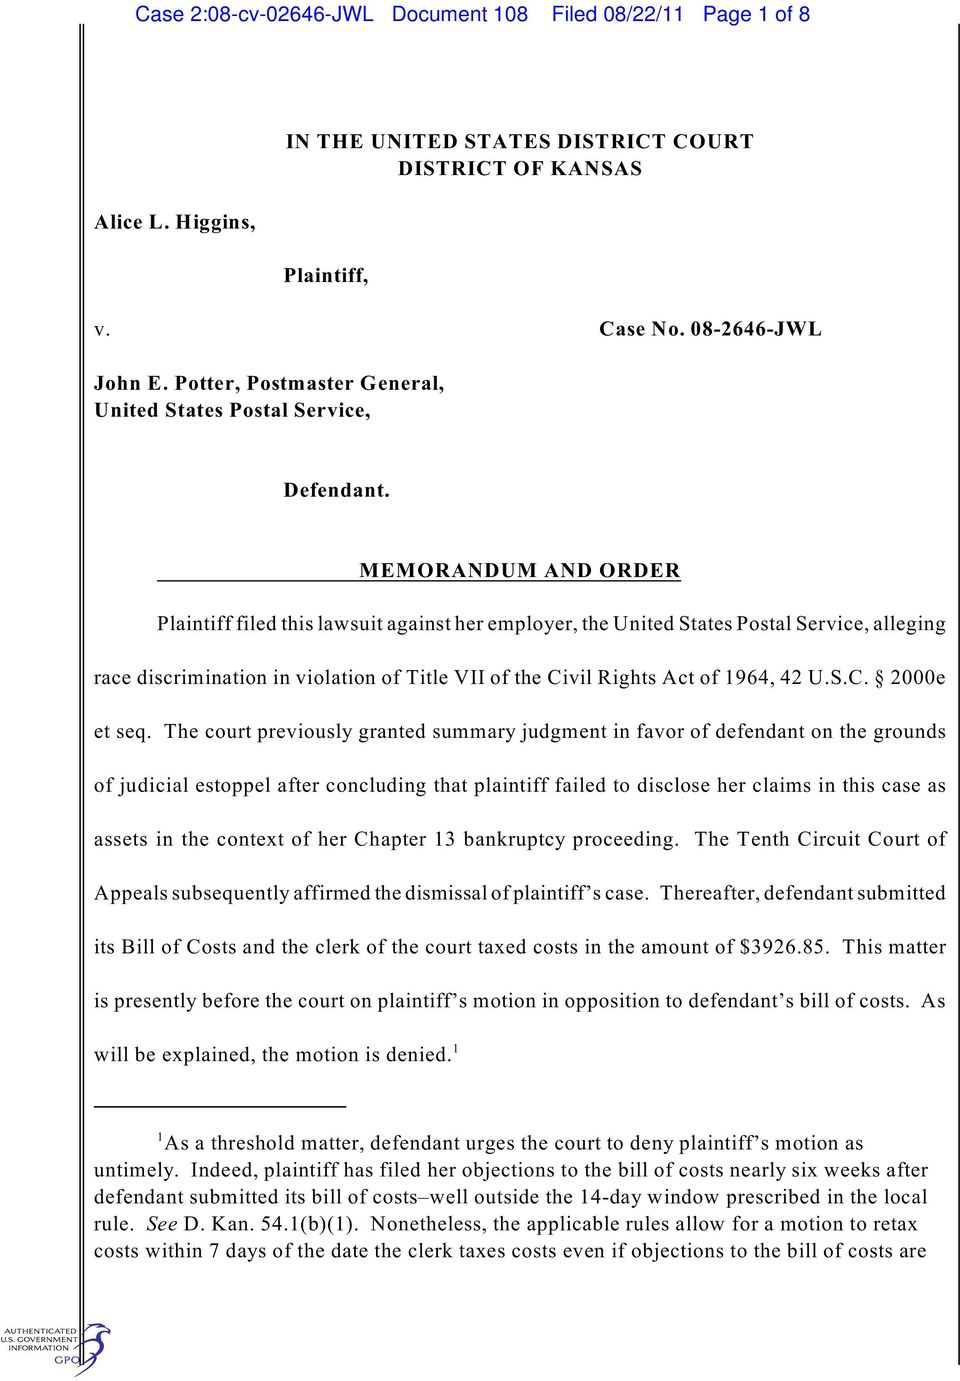 MEMORANDUM AND ORDER Plaintiff filed this lawsuit against her employer, the United States Postal Service, alleging race discrimination in violation of Title VII of the Civil Rights Act of 1964, 42 U.